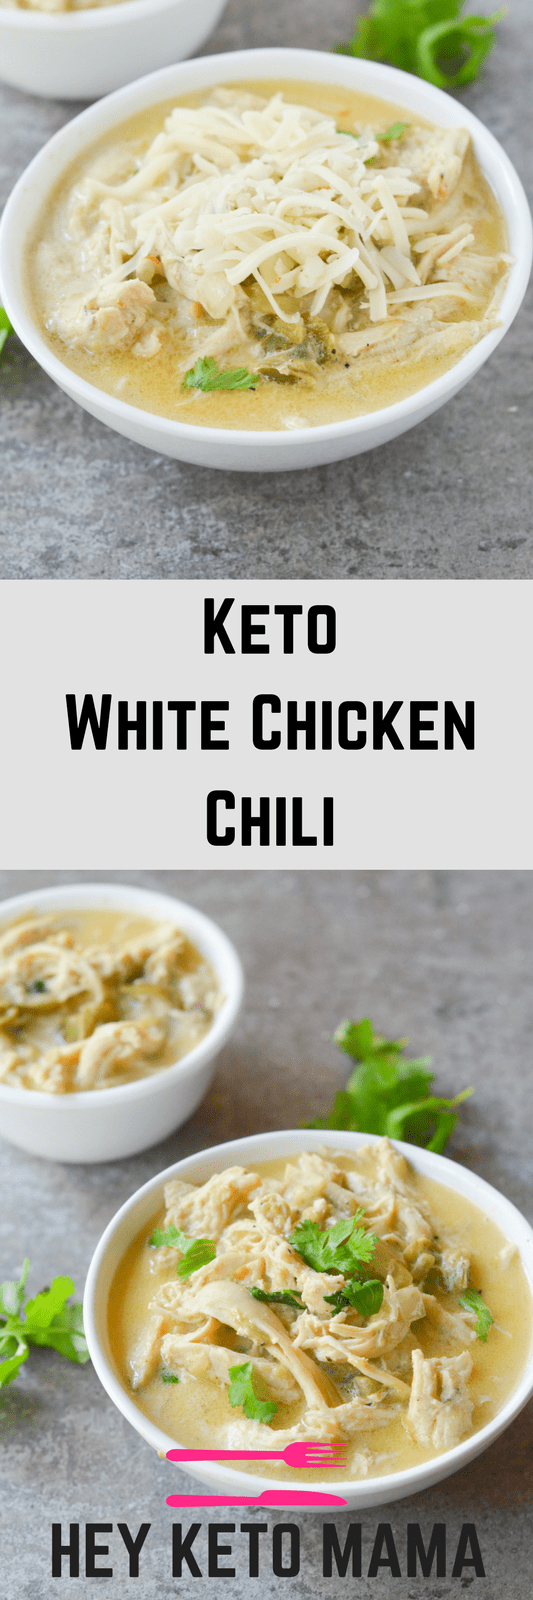 This Keto White Chicken Chili is an amazing comfort food for the changing seasons. It's filling, tasty and can easily be a crockpot/freezer meal! | heyketomama.com